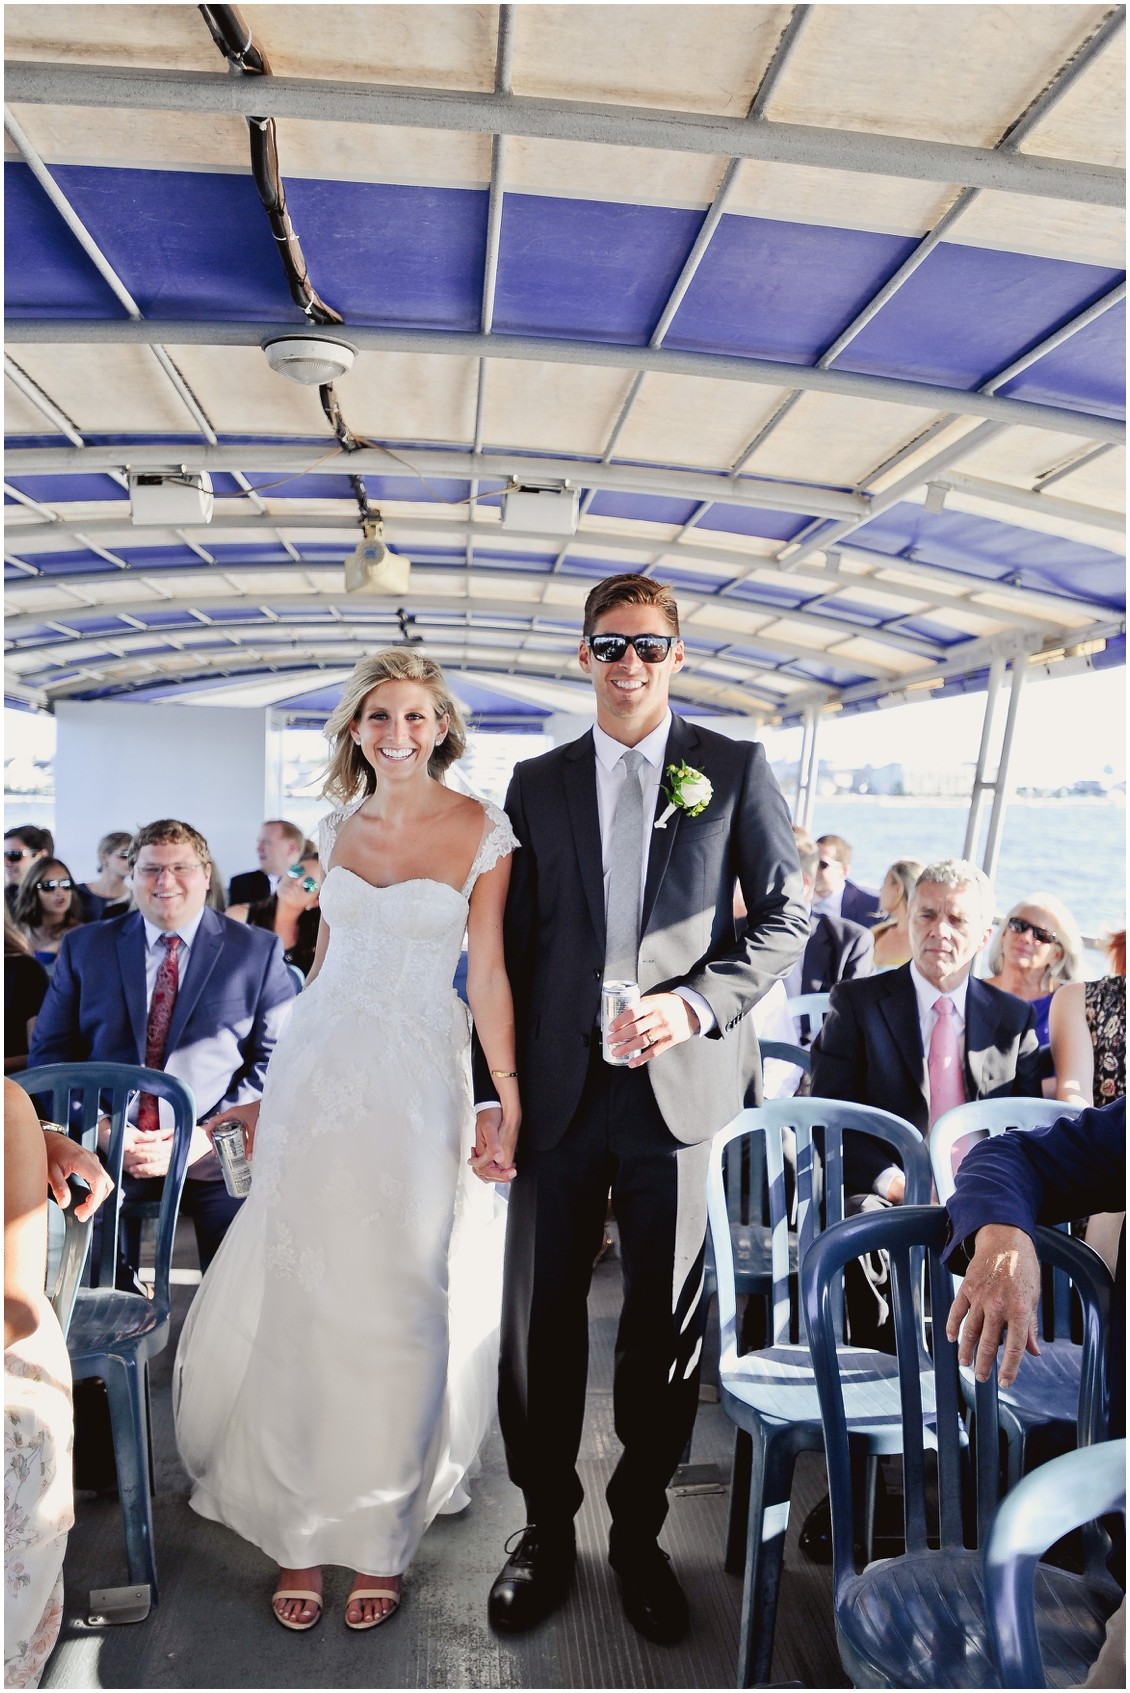 Bride and groom on ferry boat with guests. | My Eastern Shore Wedding |